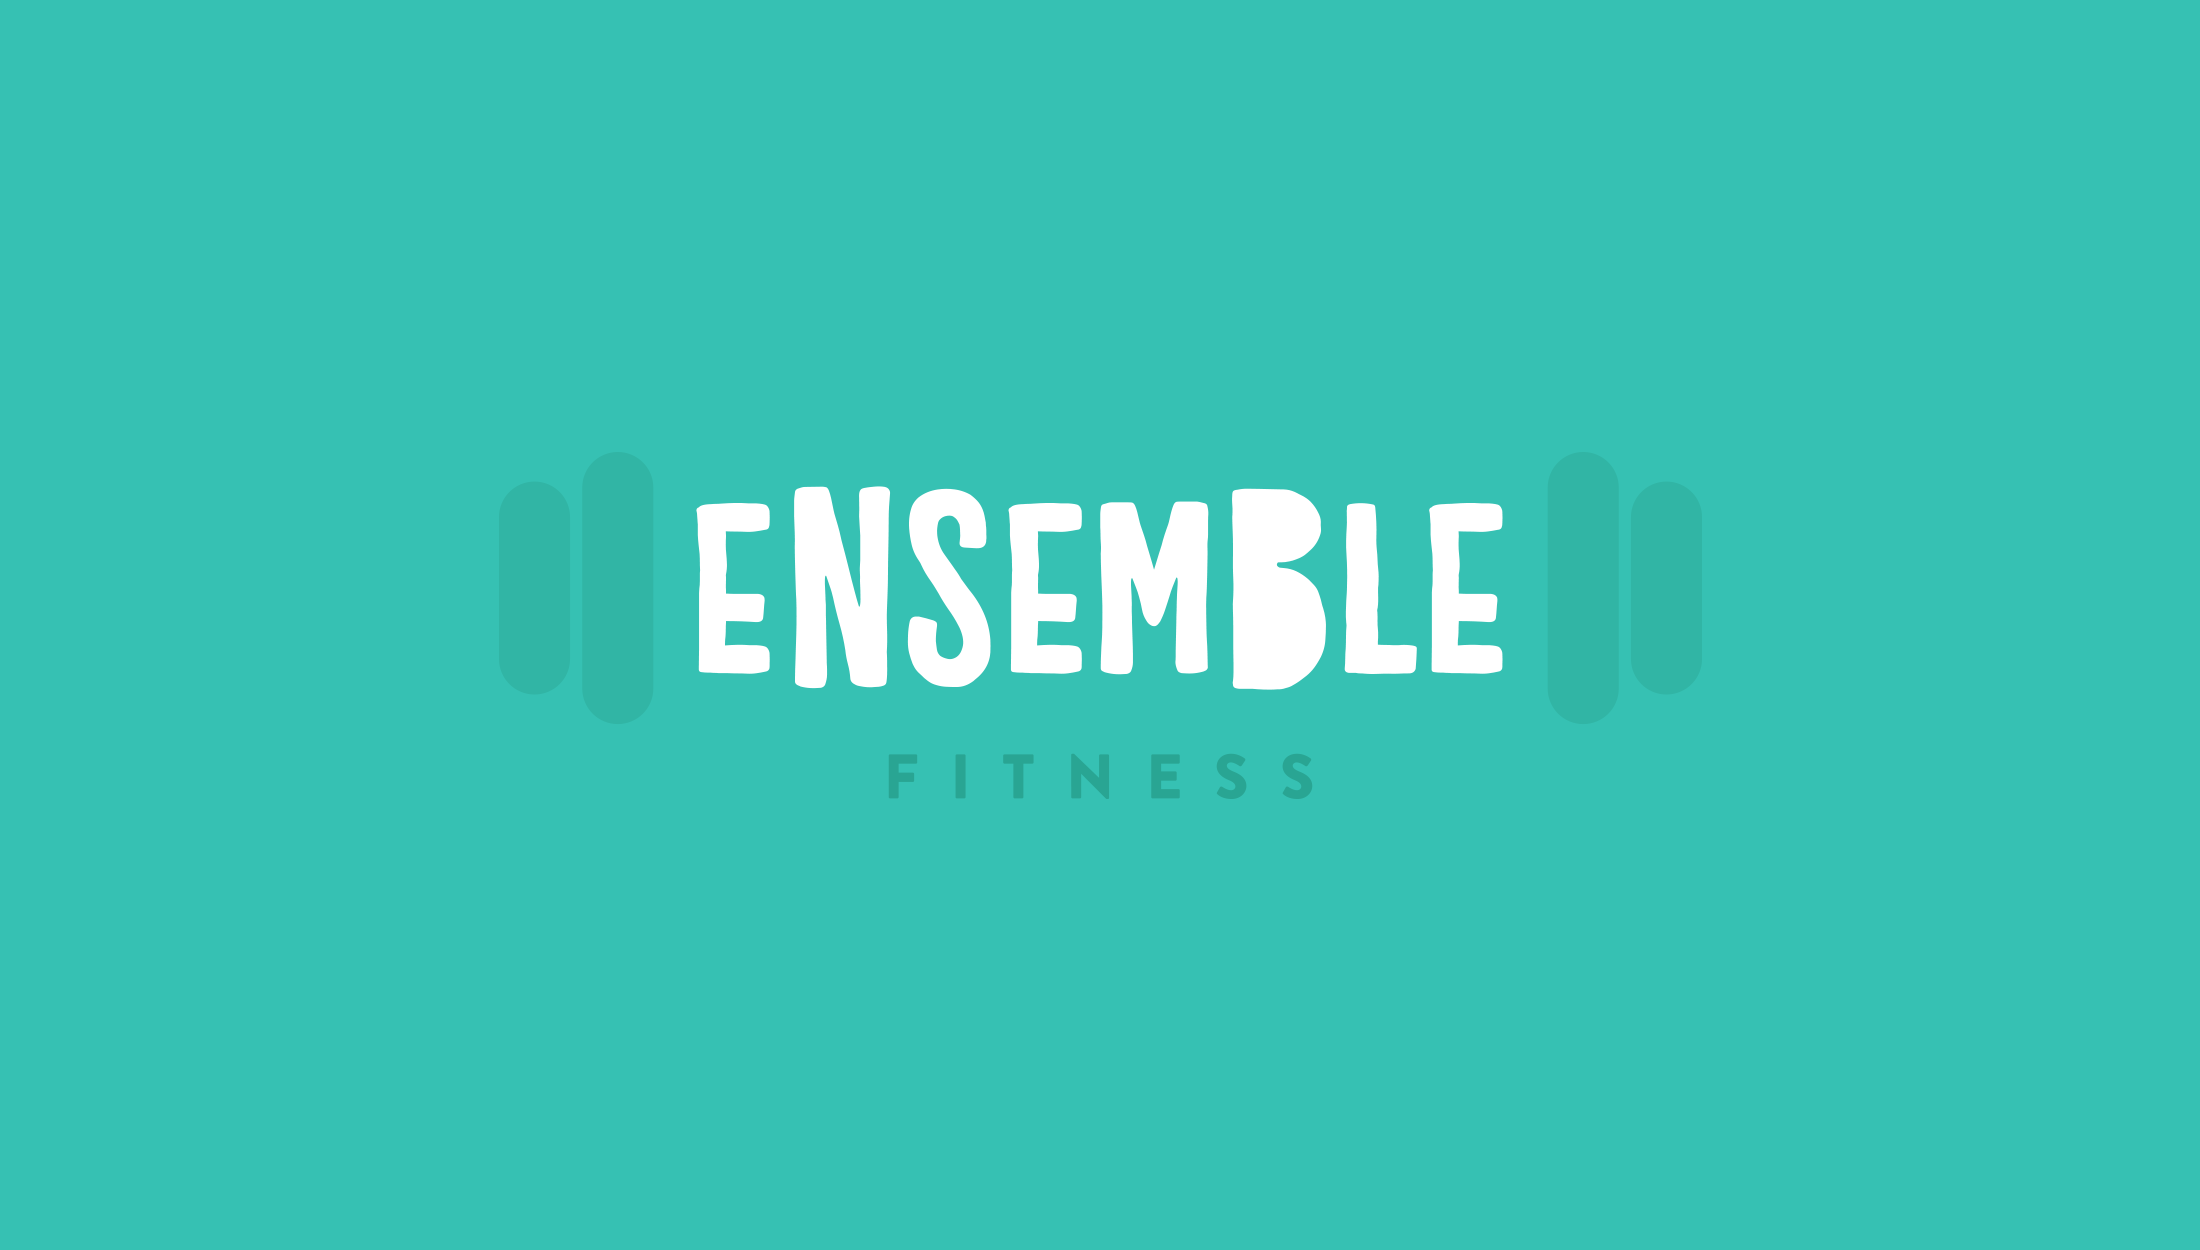 Final logo mark for Ensemble Fitness, personal training and group sessions - designed by Wiltshire-based graphic designer, Kaye Huett